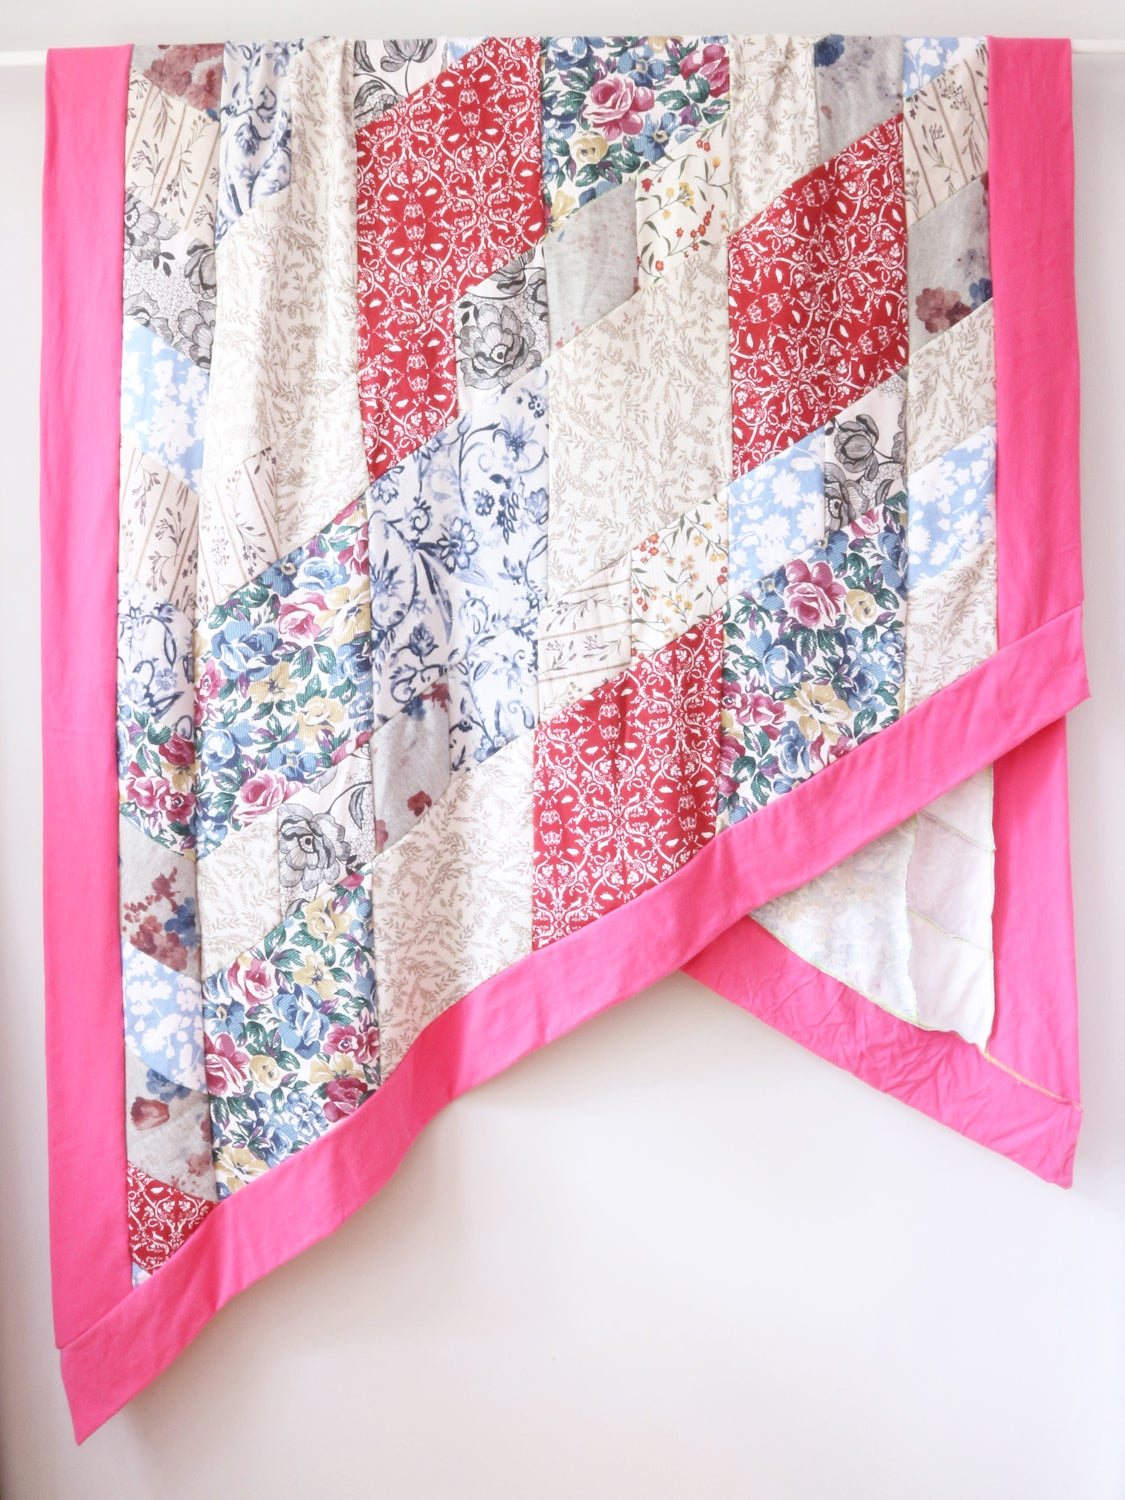 Image of superfloral rhombus patchwork floral knit upcycled courtneycourtney diamond pink blanket throw